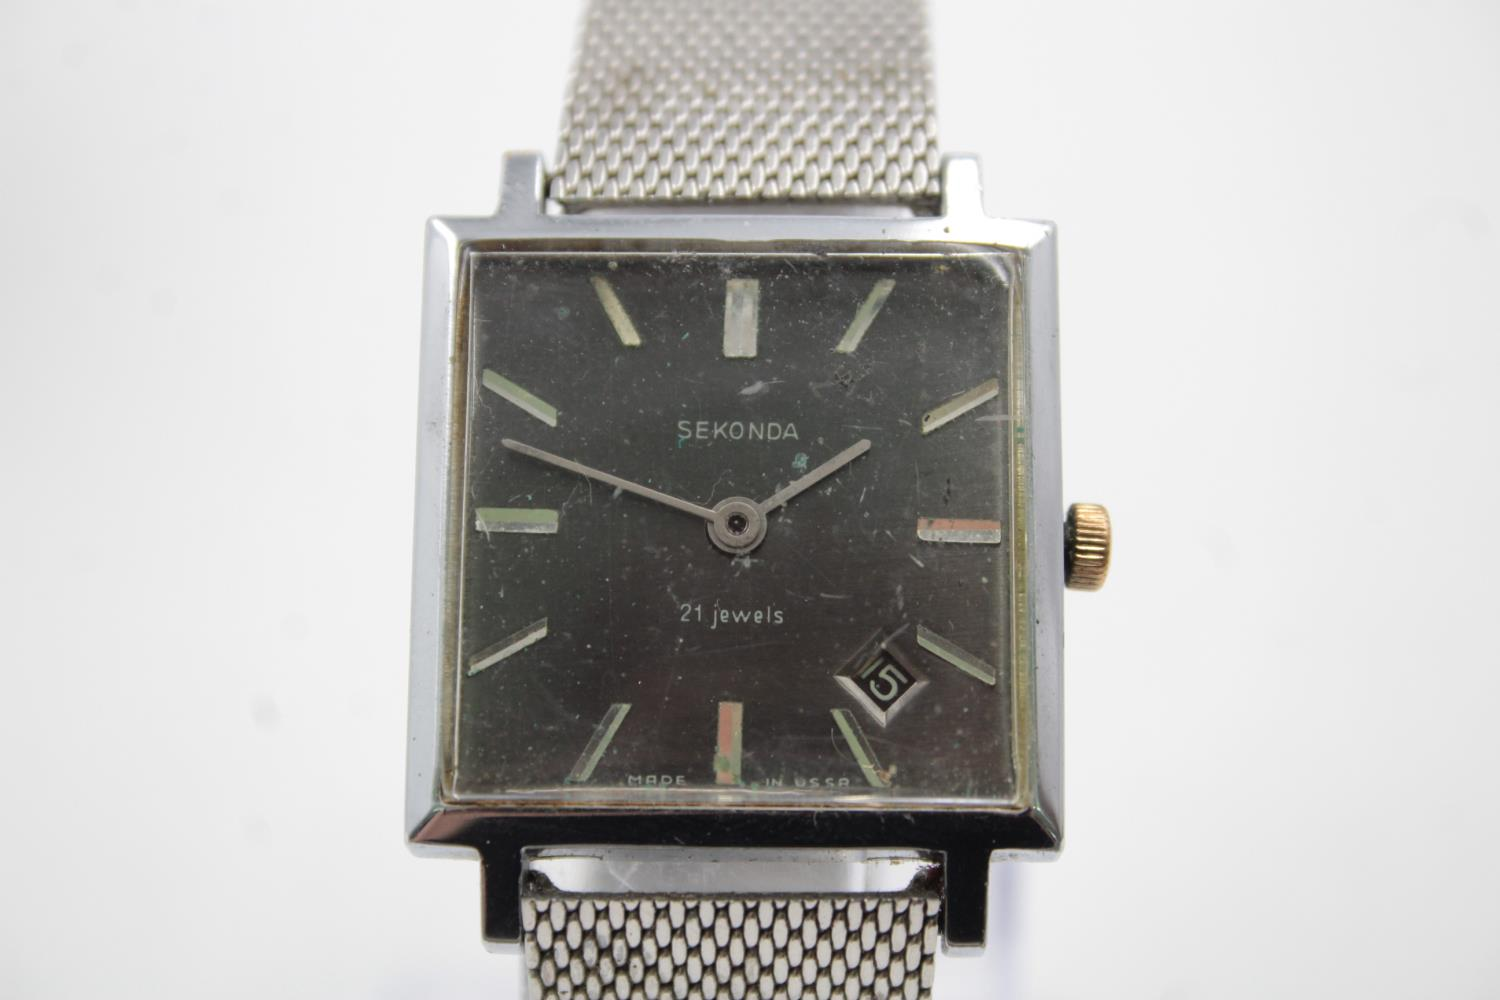 3 x Vintage Gents WRISTWATCHES Hand-Wind WORKING Inc. Valex, Rotary Etc - Image 2 of 10